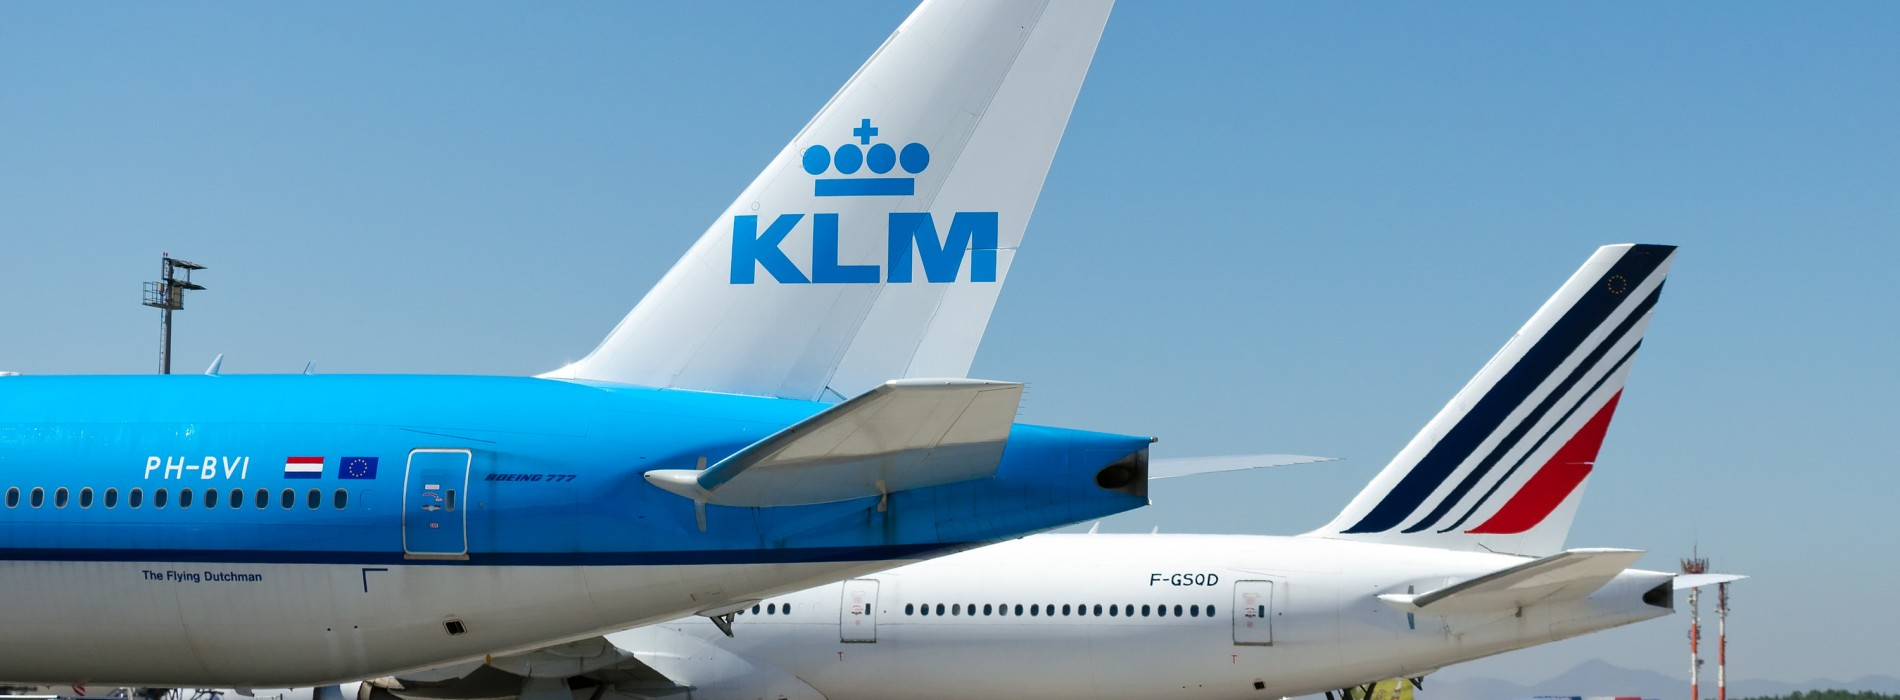 Air France-KLM launches SummerSale offering fares to over 75 destinations